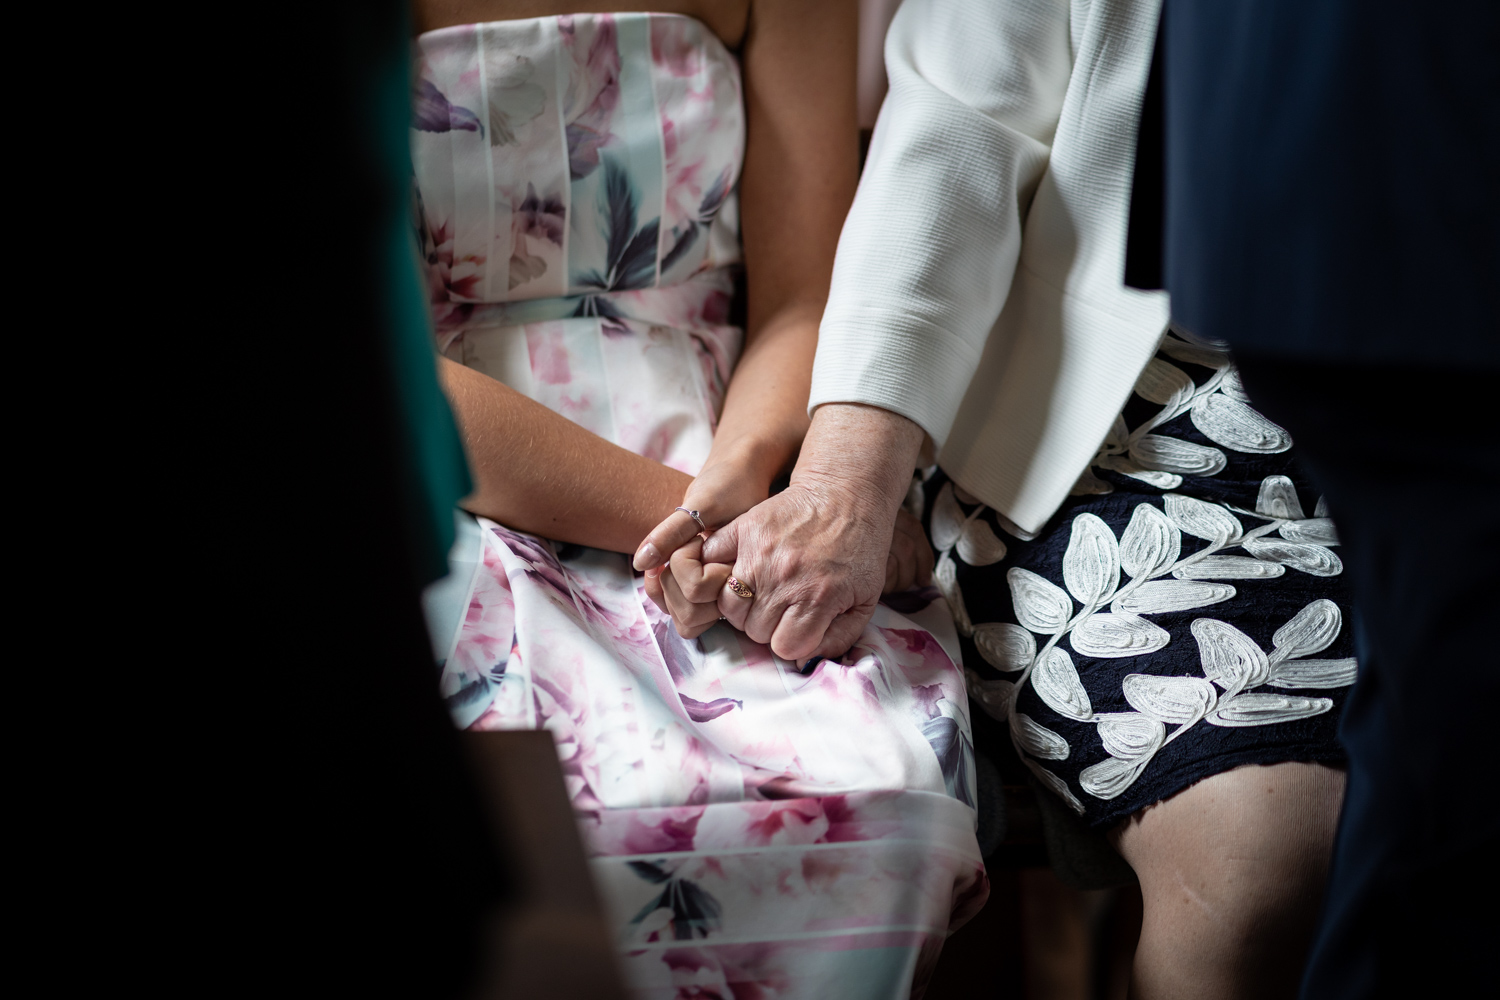 Mother of groom holding hands with granddaughter